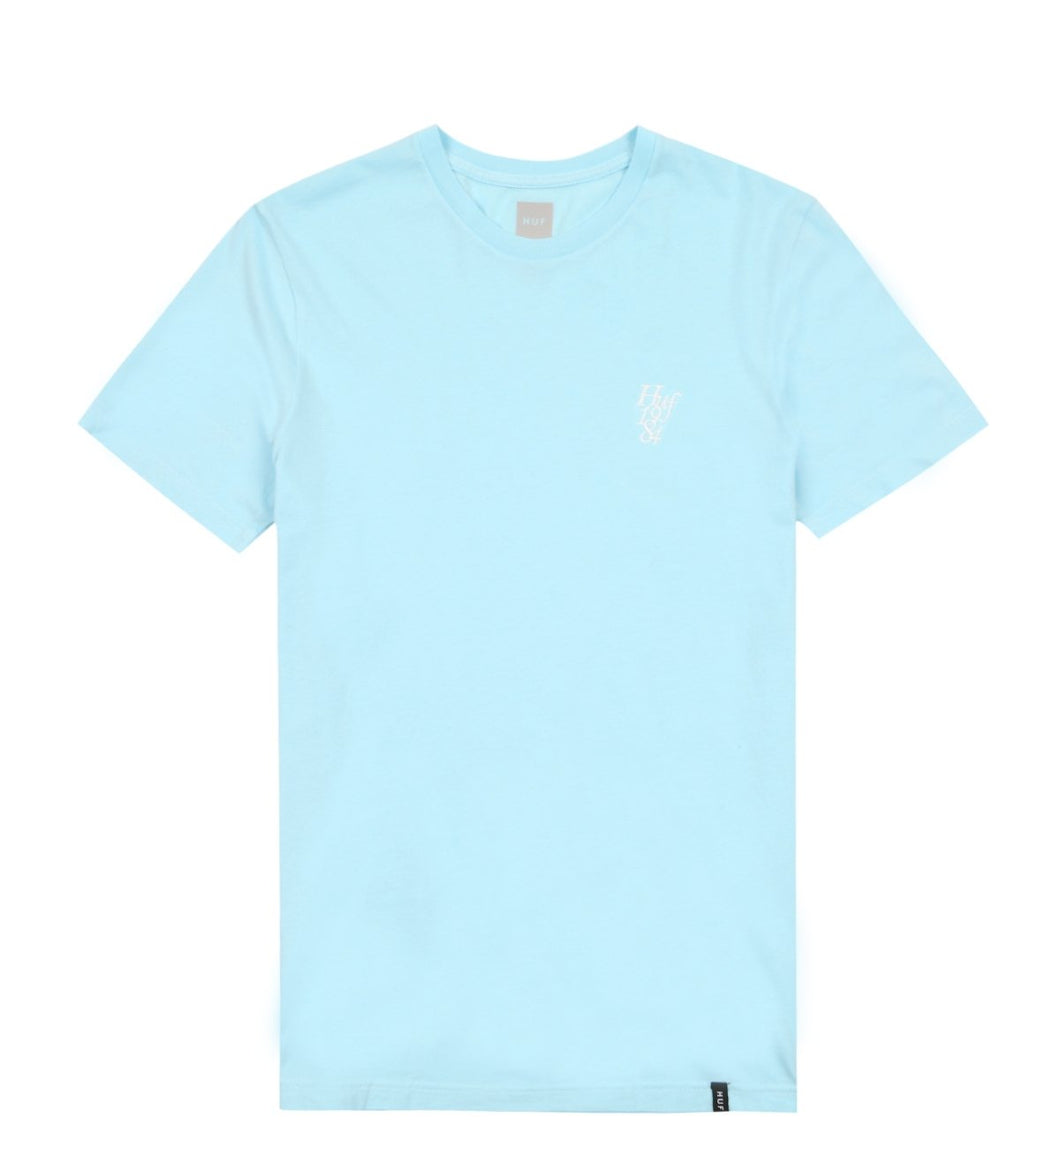 HUF COUNTRY CLUB OVERDYE TEE // CRYSTAL BLUE-The Collateral